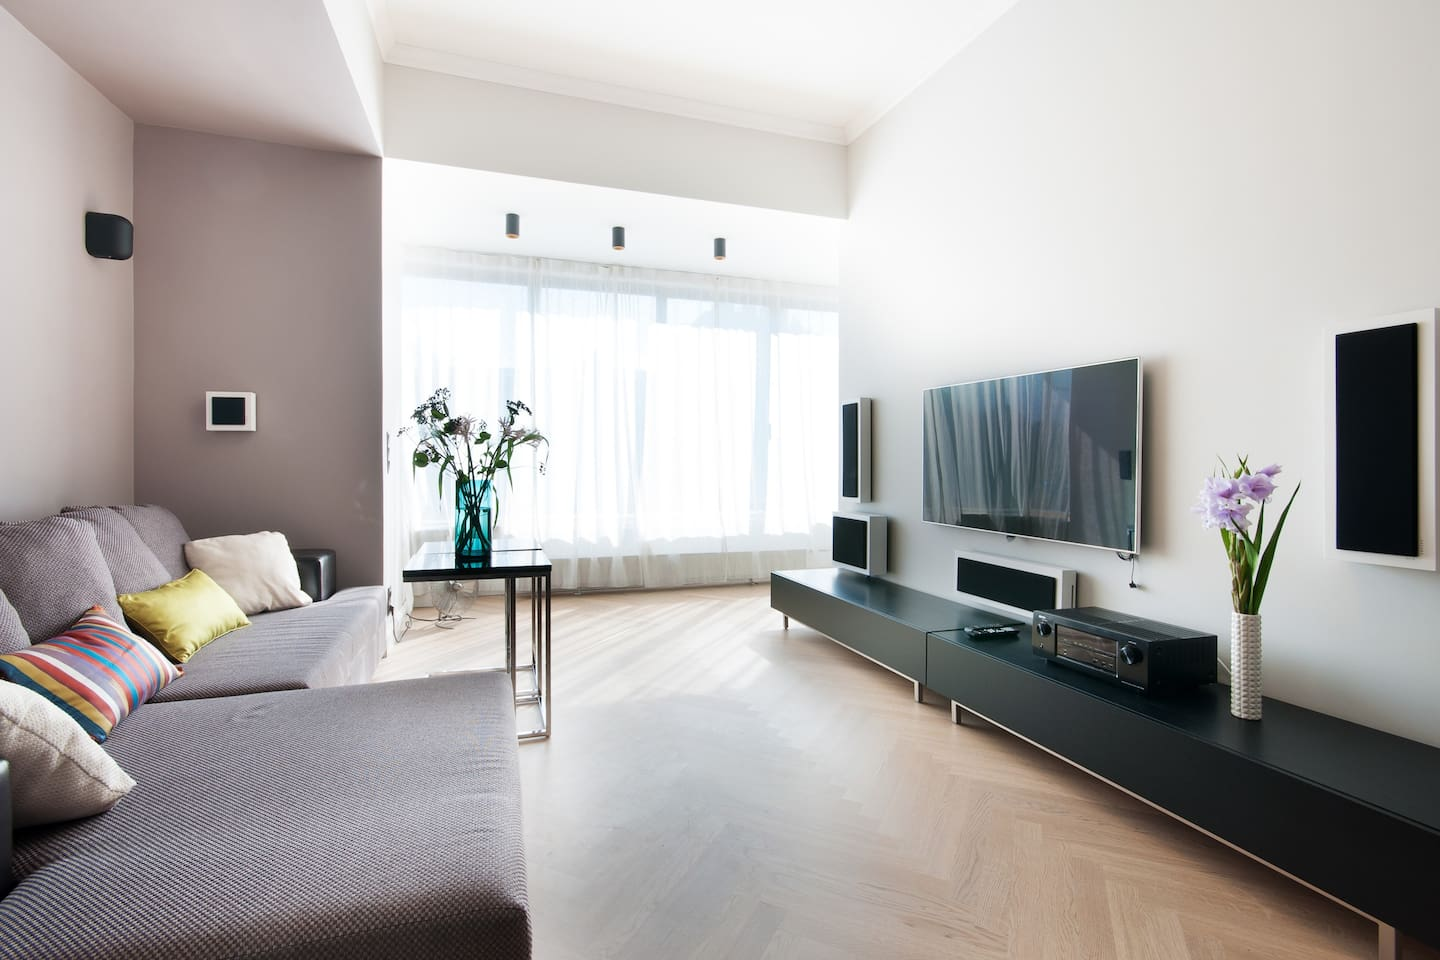 Living room with xxl folded sofa and HI-FI surround system.